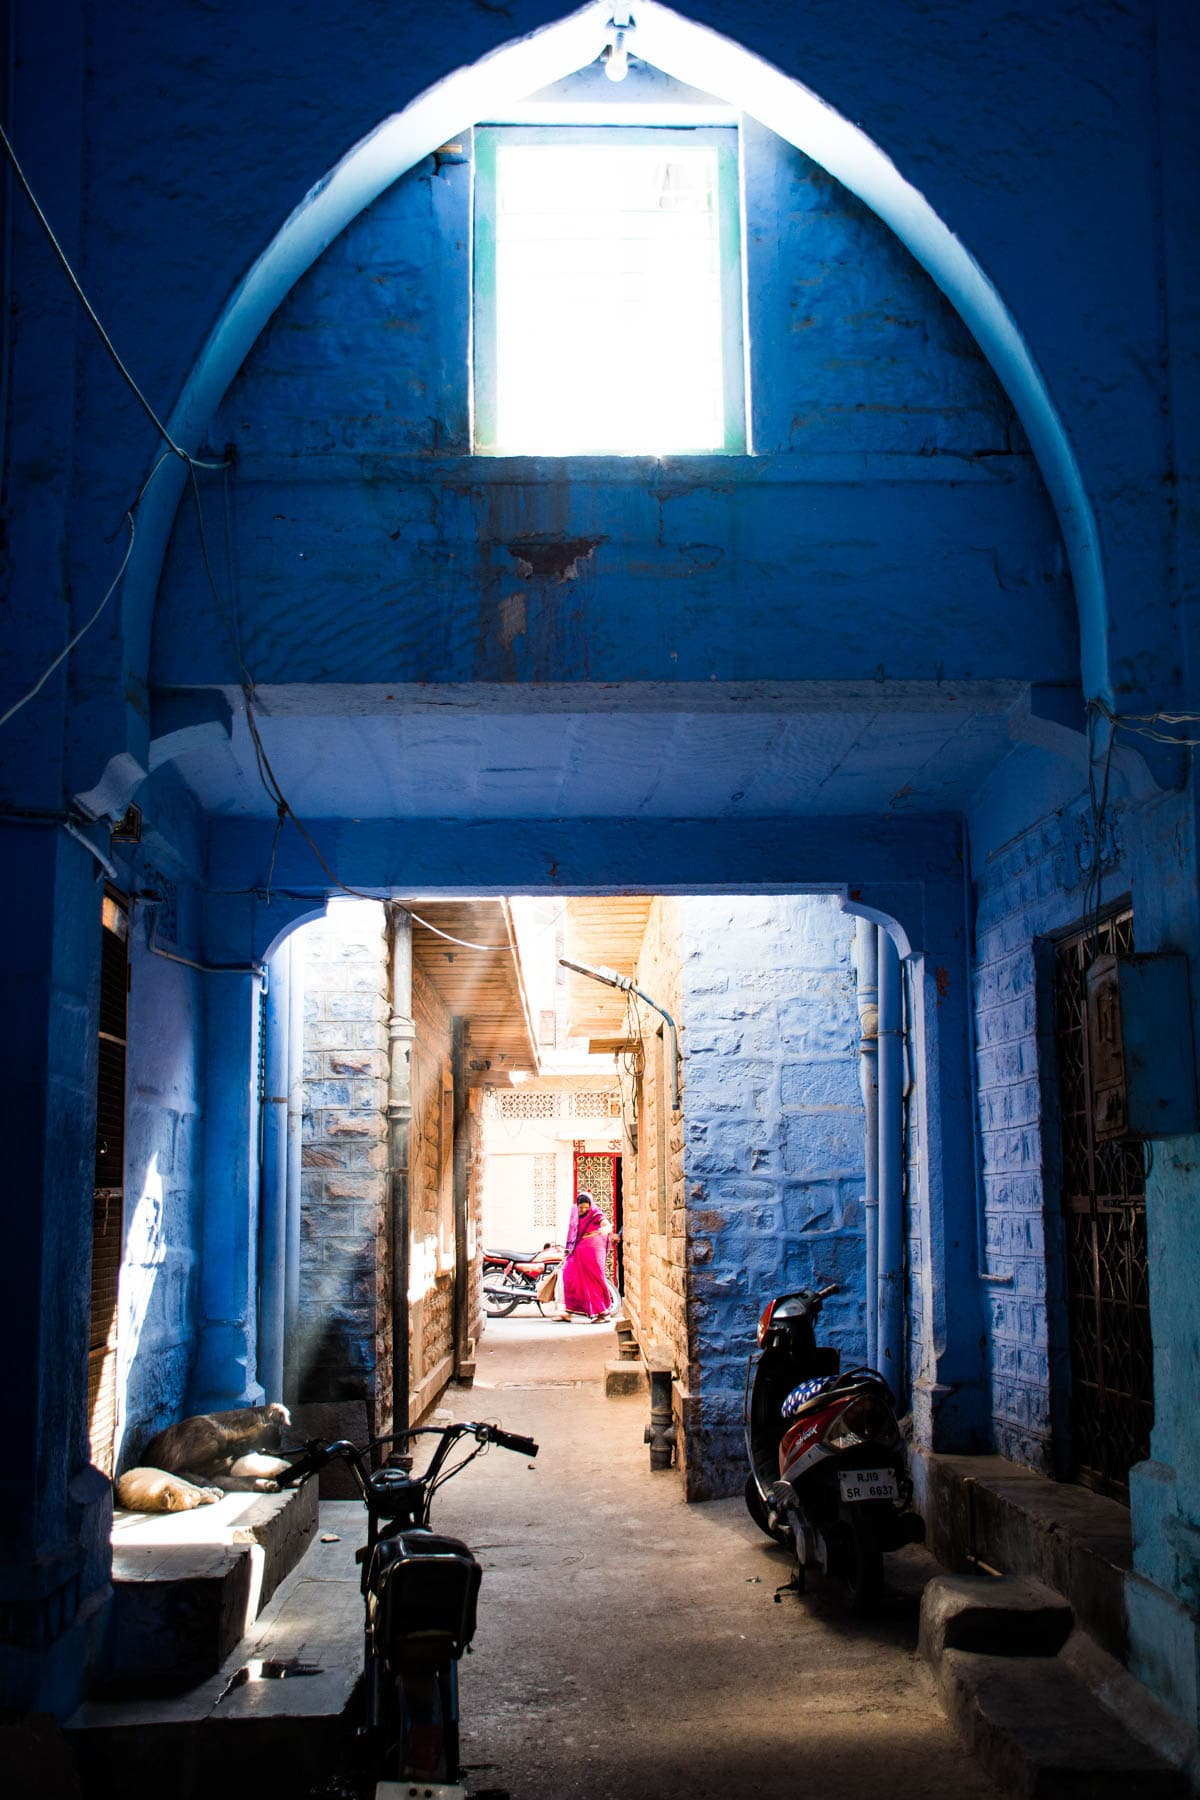 Light beams through a Brahmin blue house on the streets of Jodhpur, Rajasthan, India.